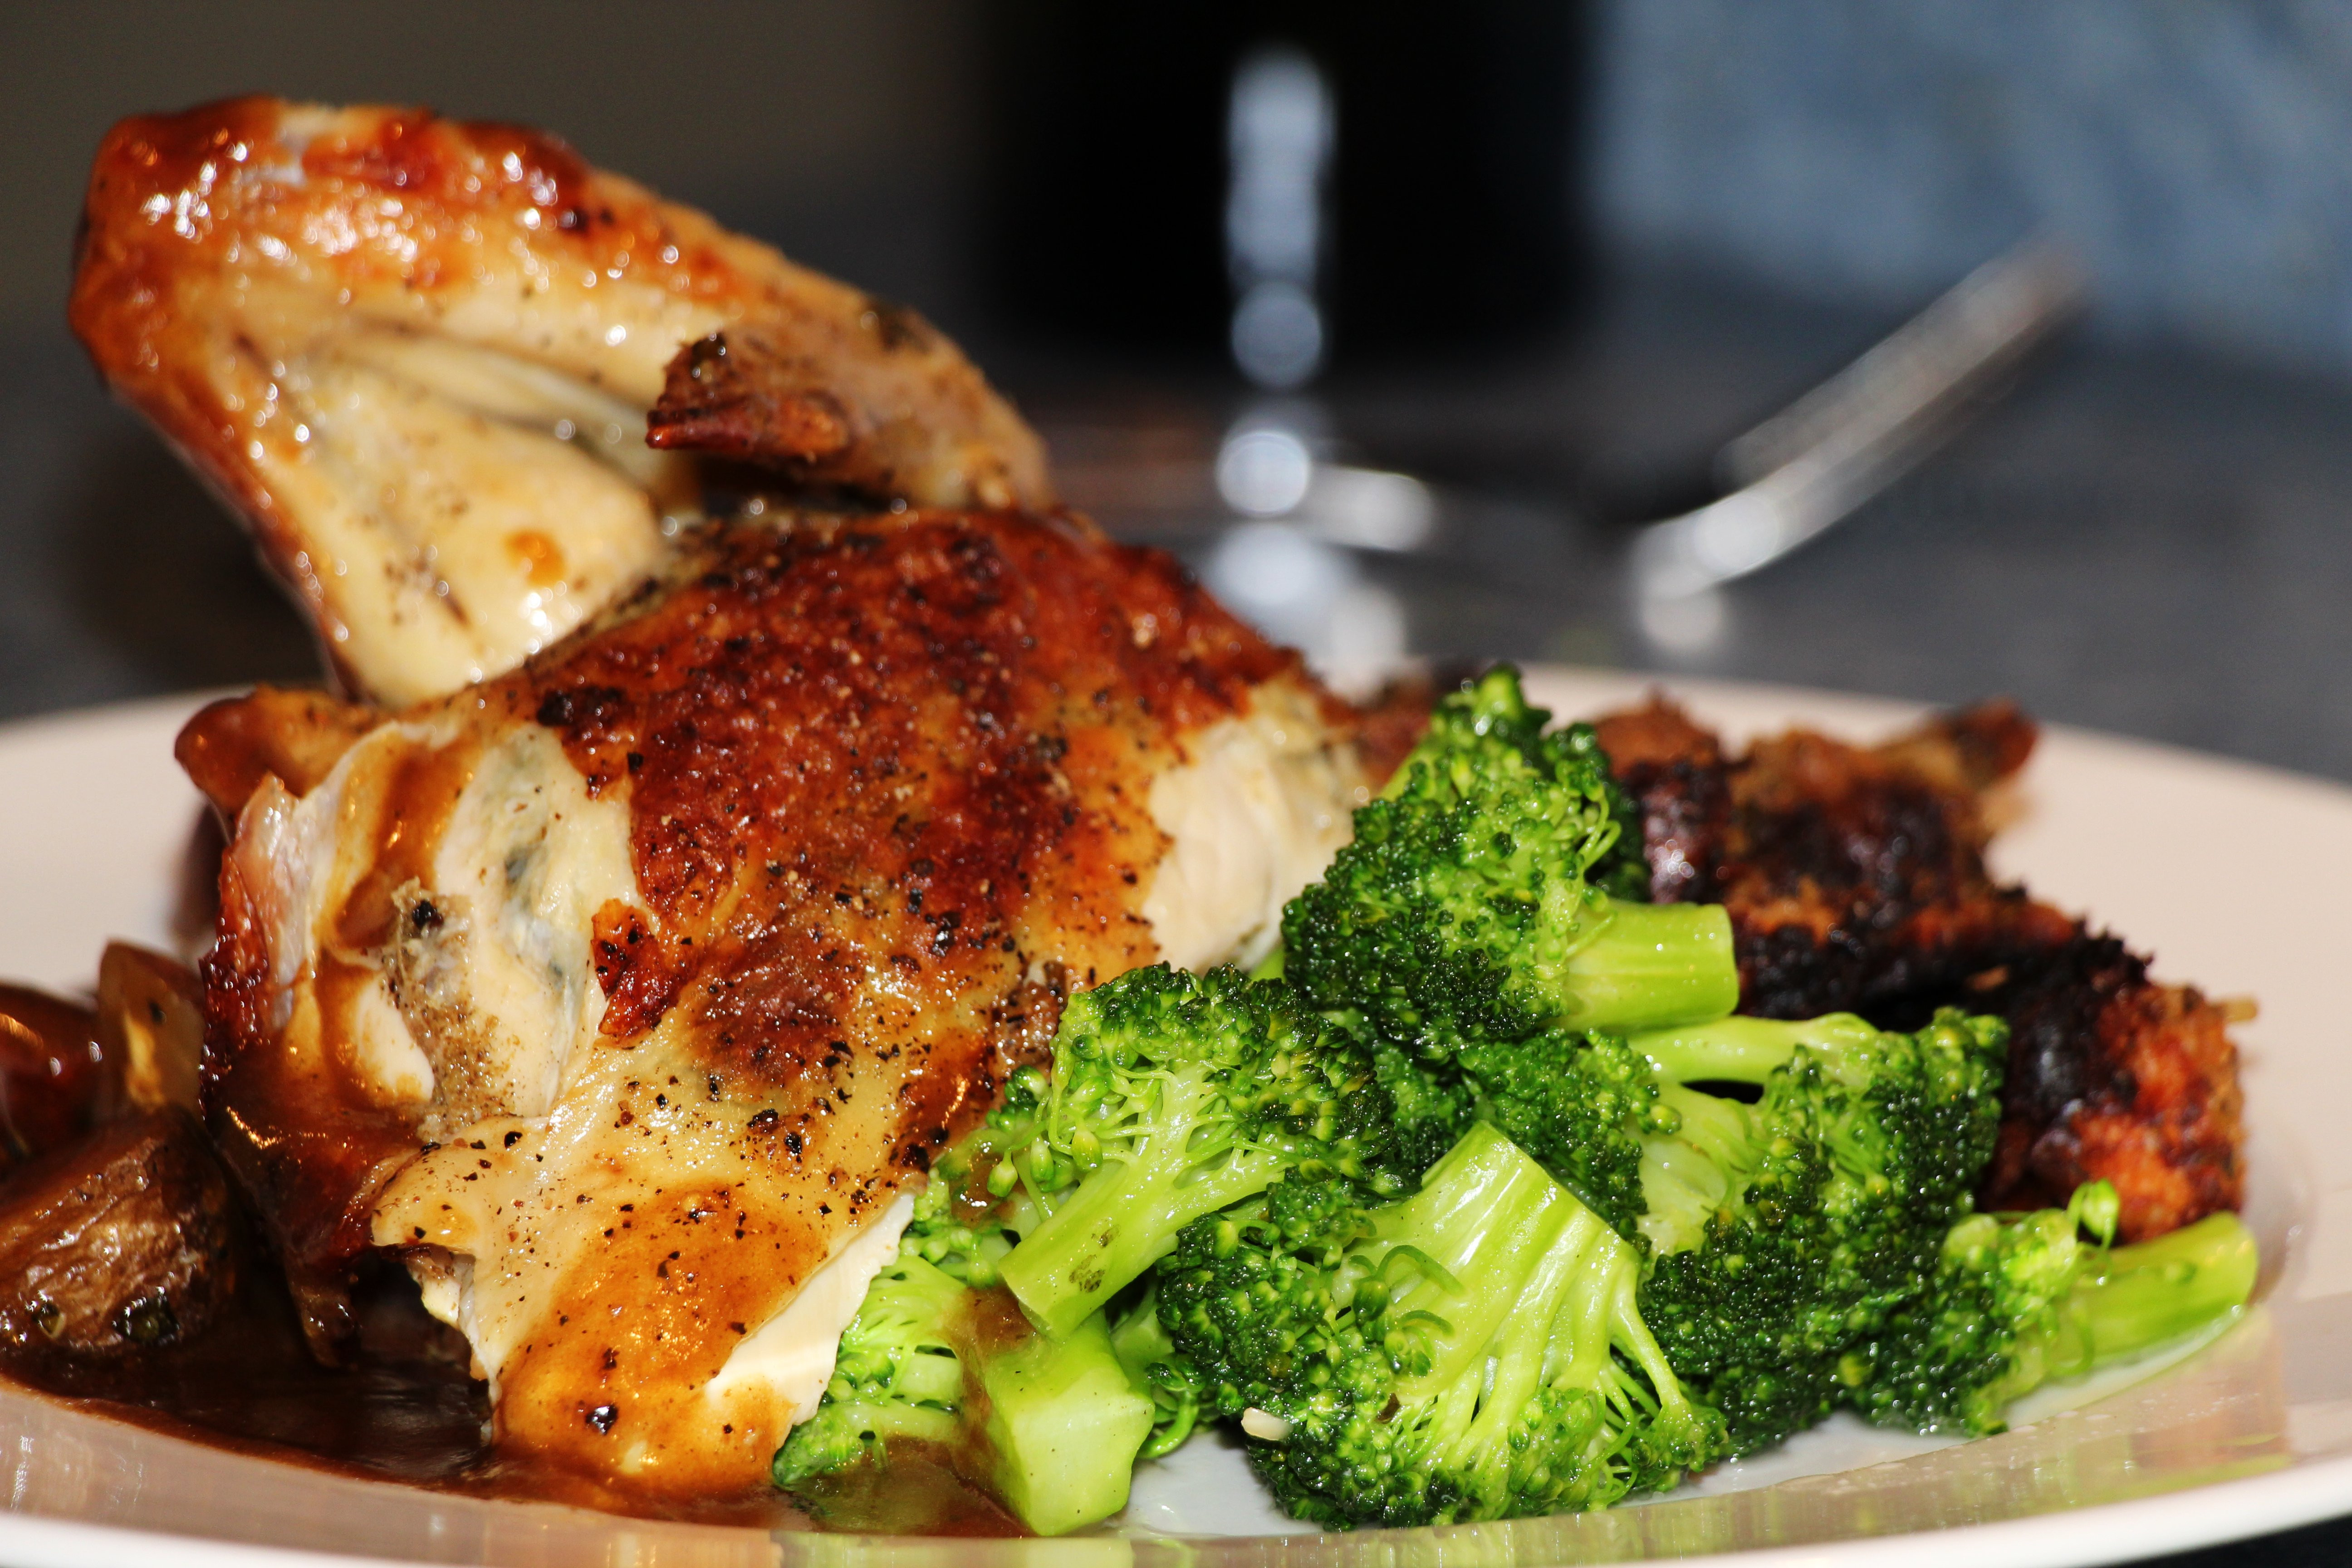 Roasted Chicken Dinners  File Roasted Chicken Dinner Plate Broccoli Demi Glace